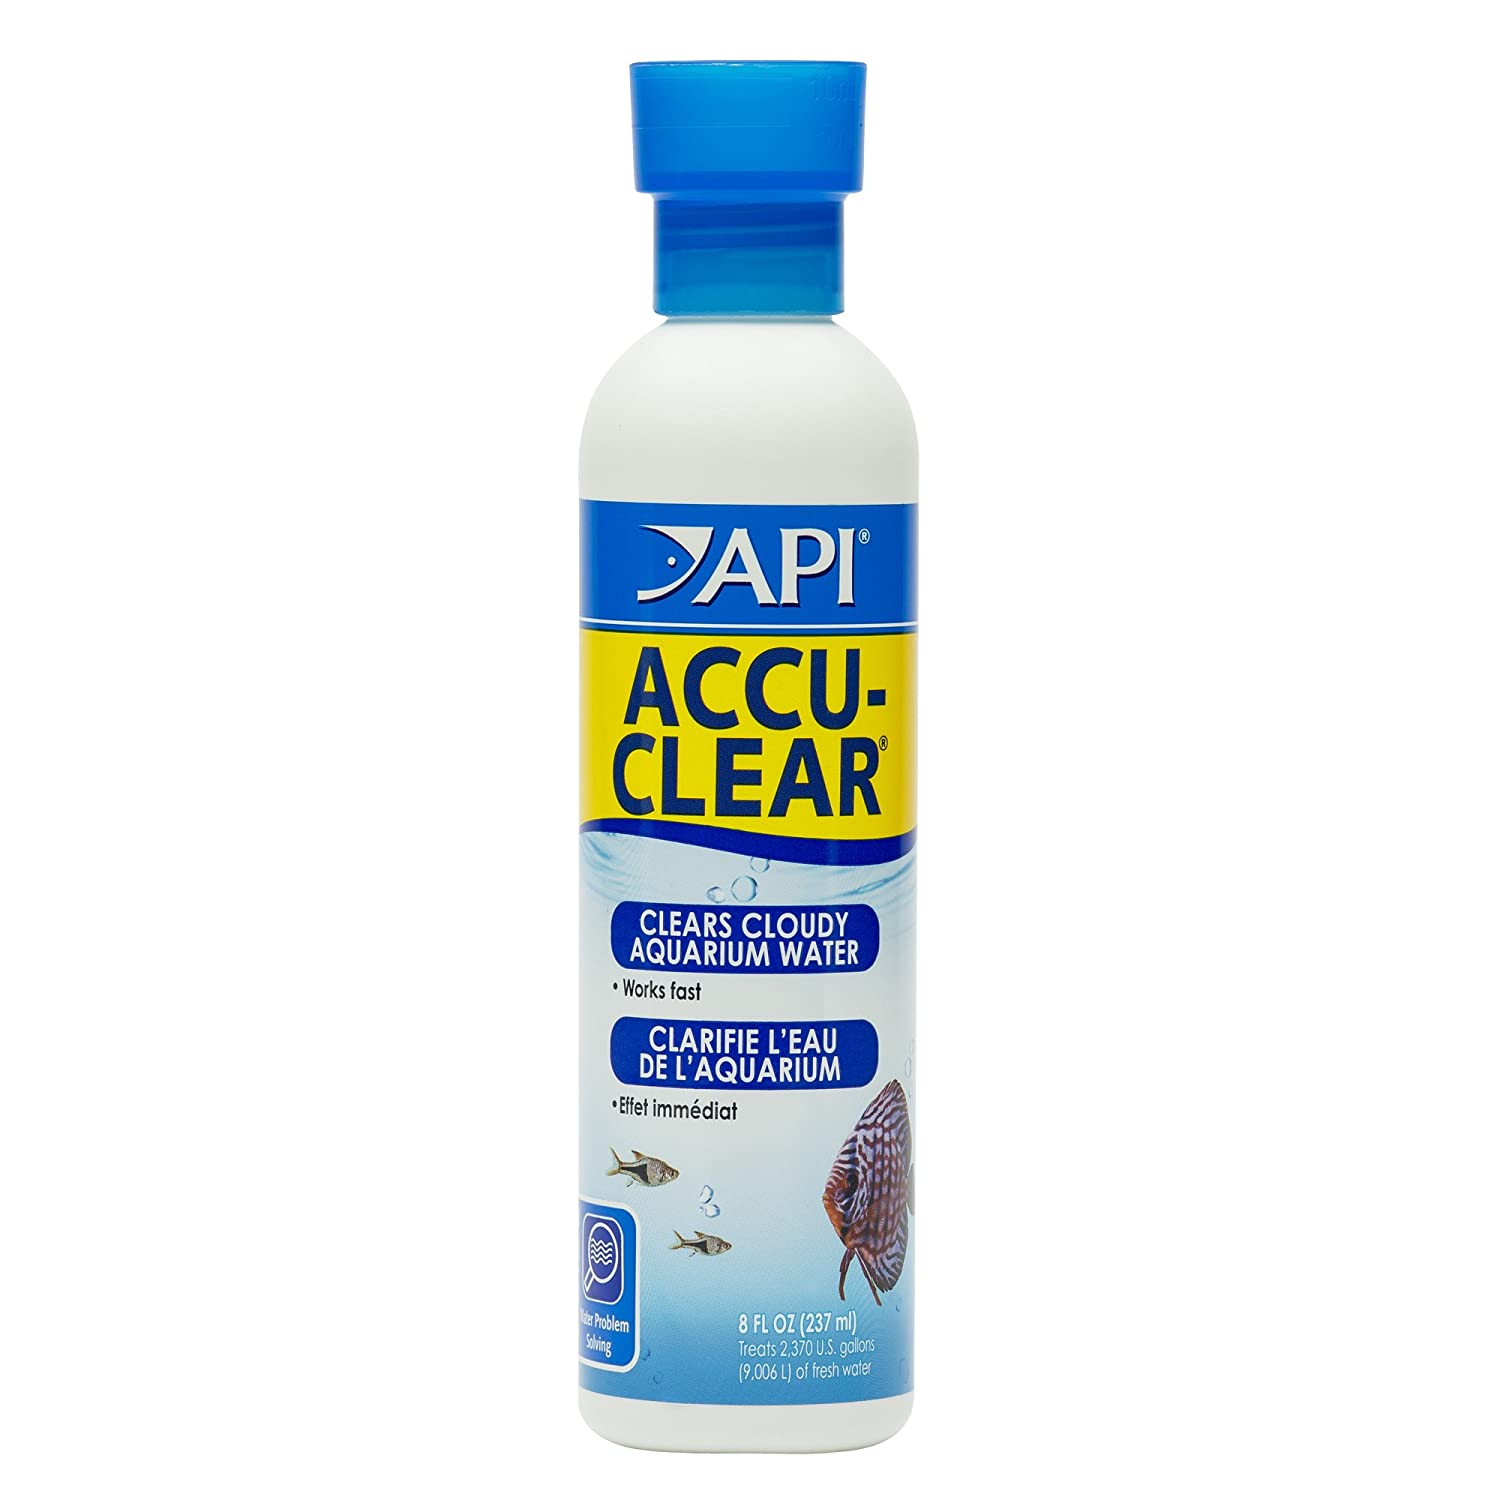 API ACCU-CLEAR Freshwater Aquarium Water Clarifier